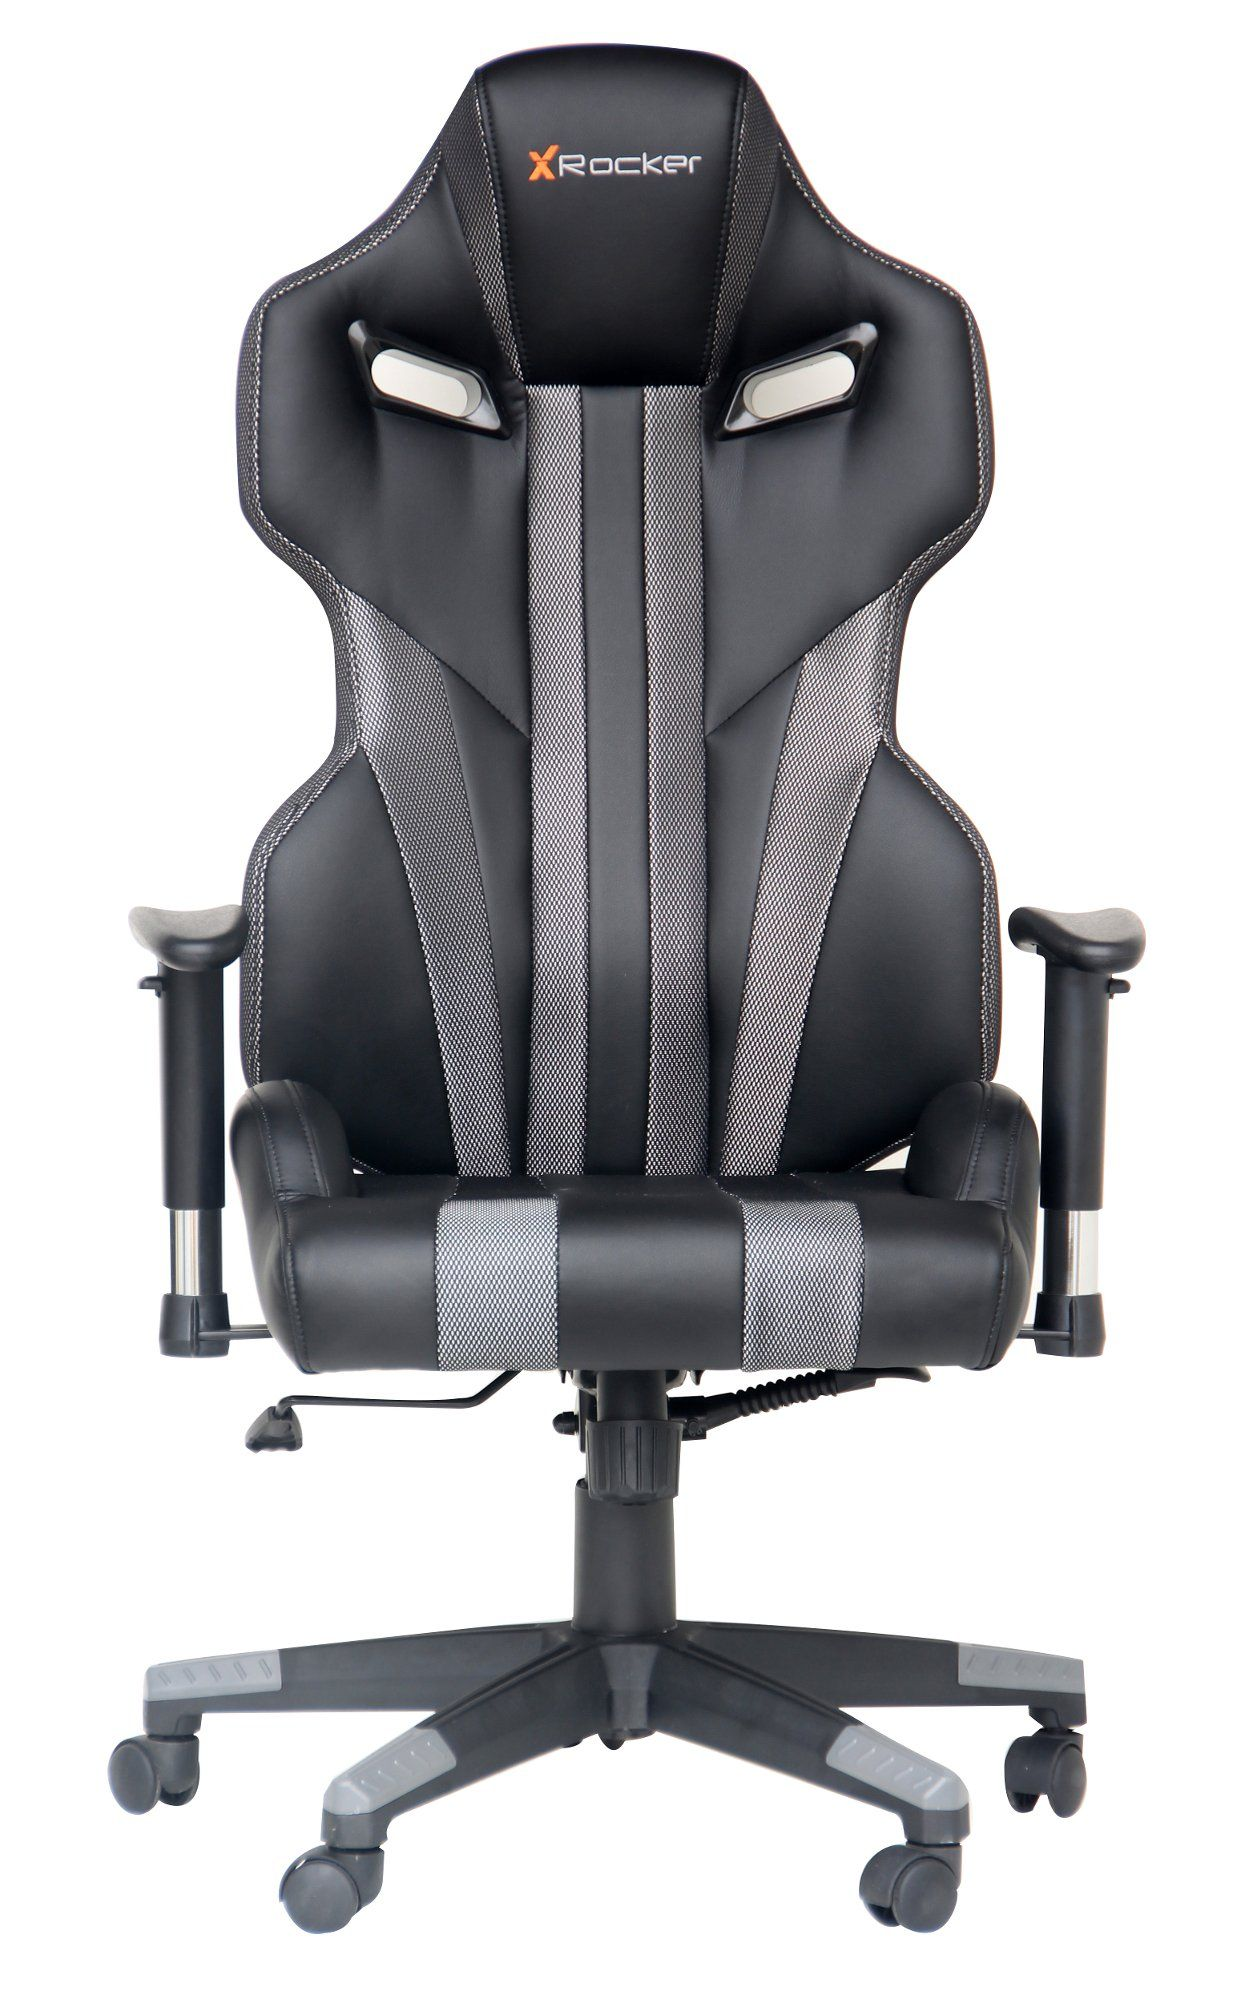 Black Pcxr1 Pc Gaming Chair X Rocker In 2020 Gaming Chair Pc Gaming Chair Chair